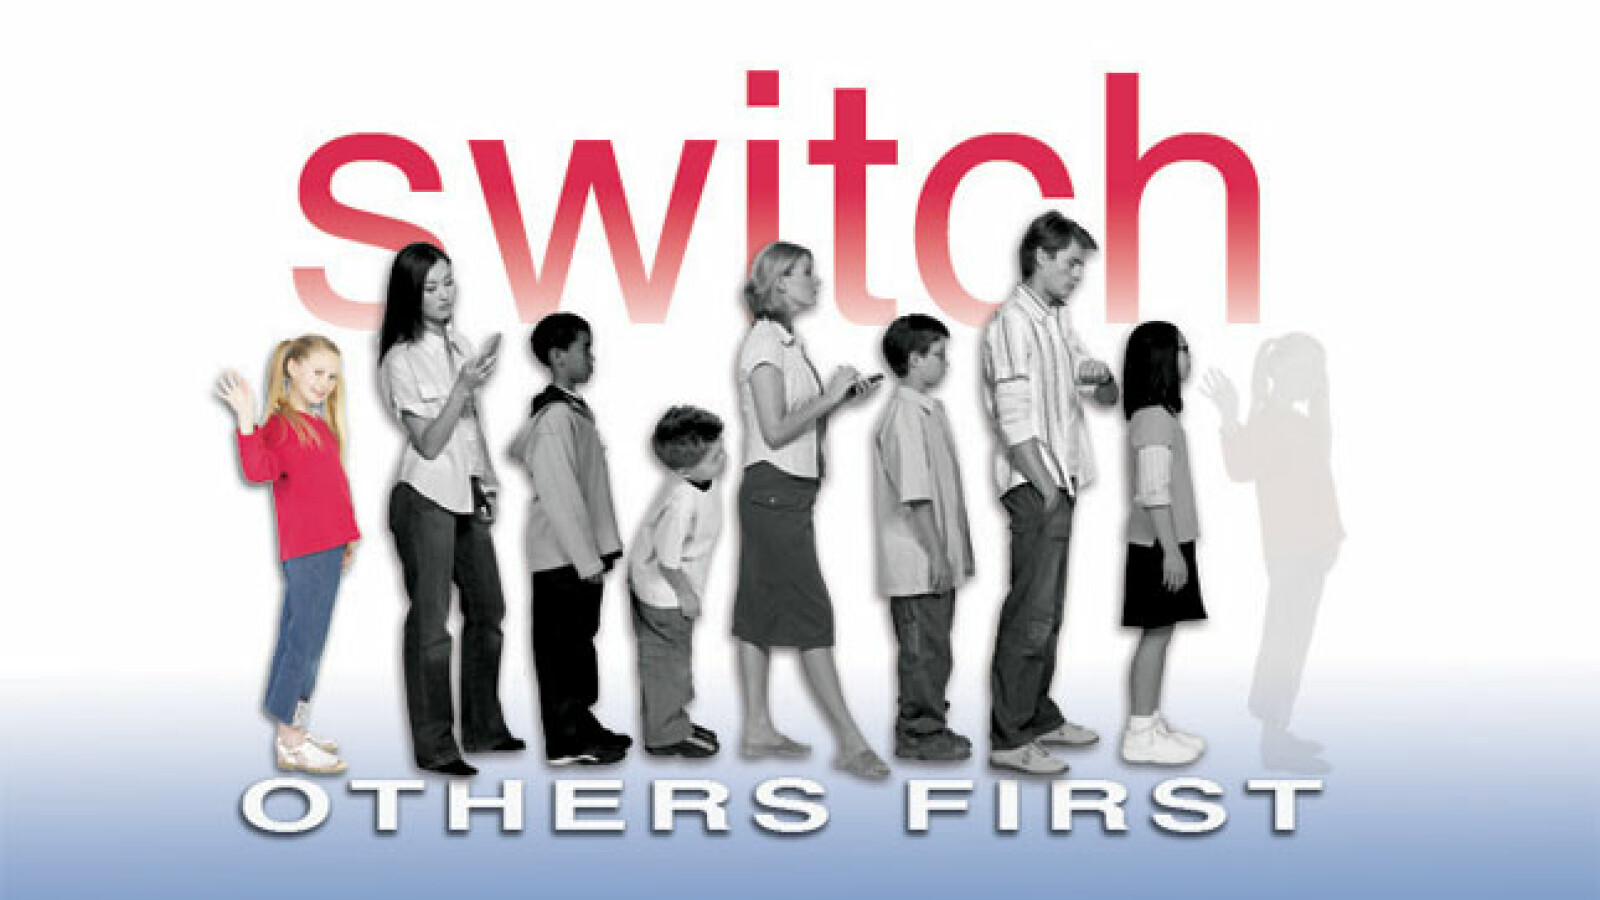 Switch - Others First